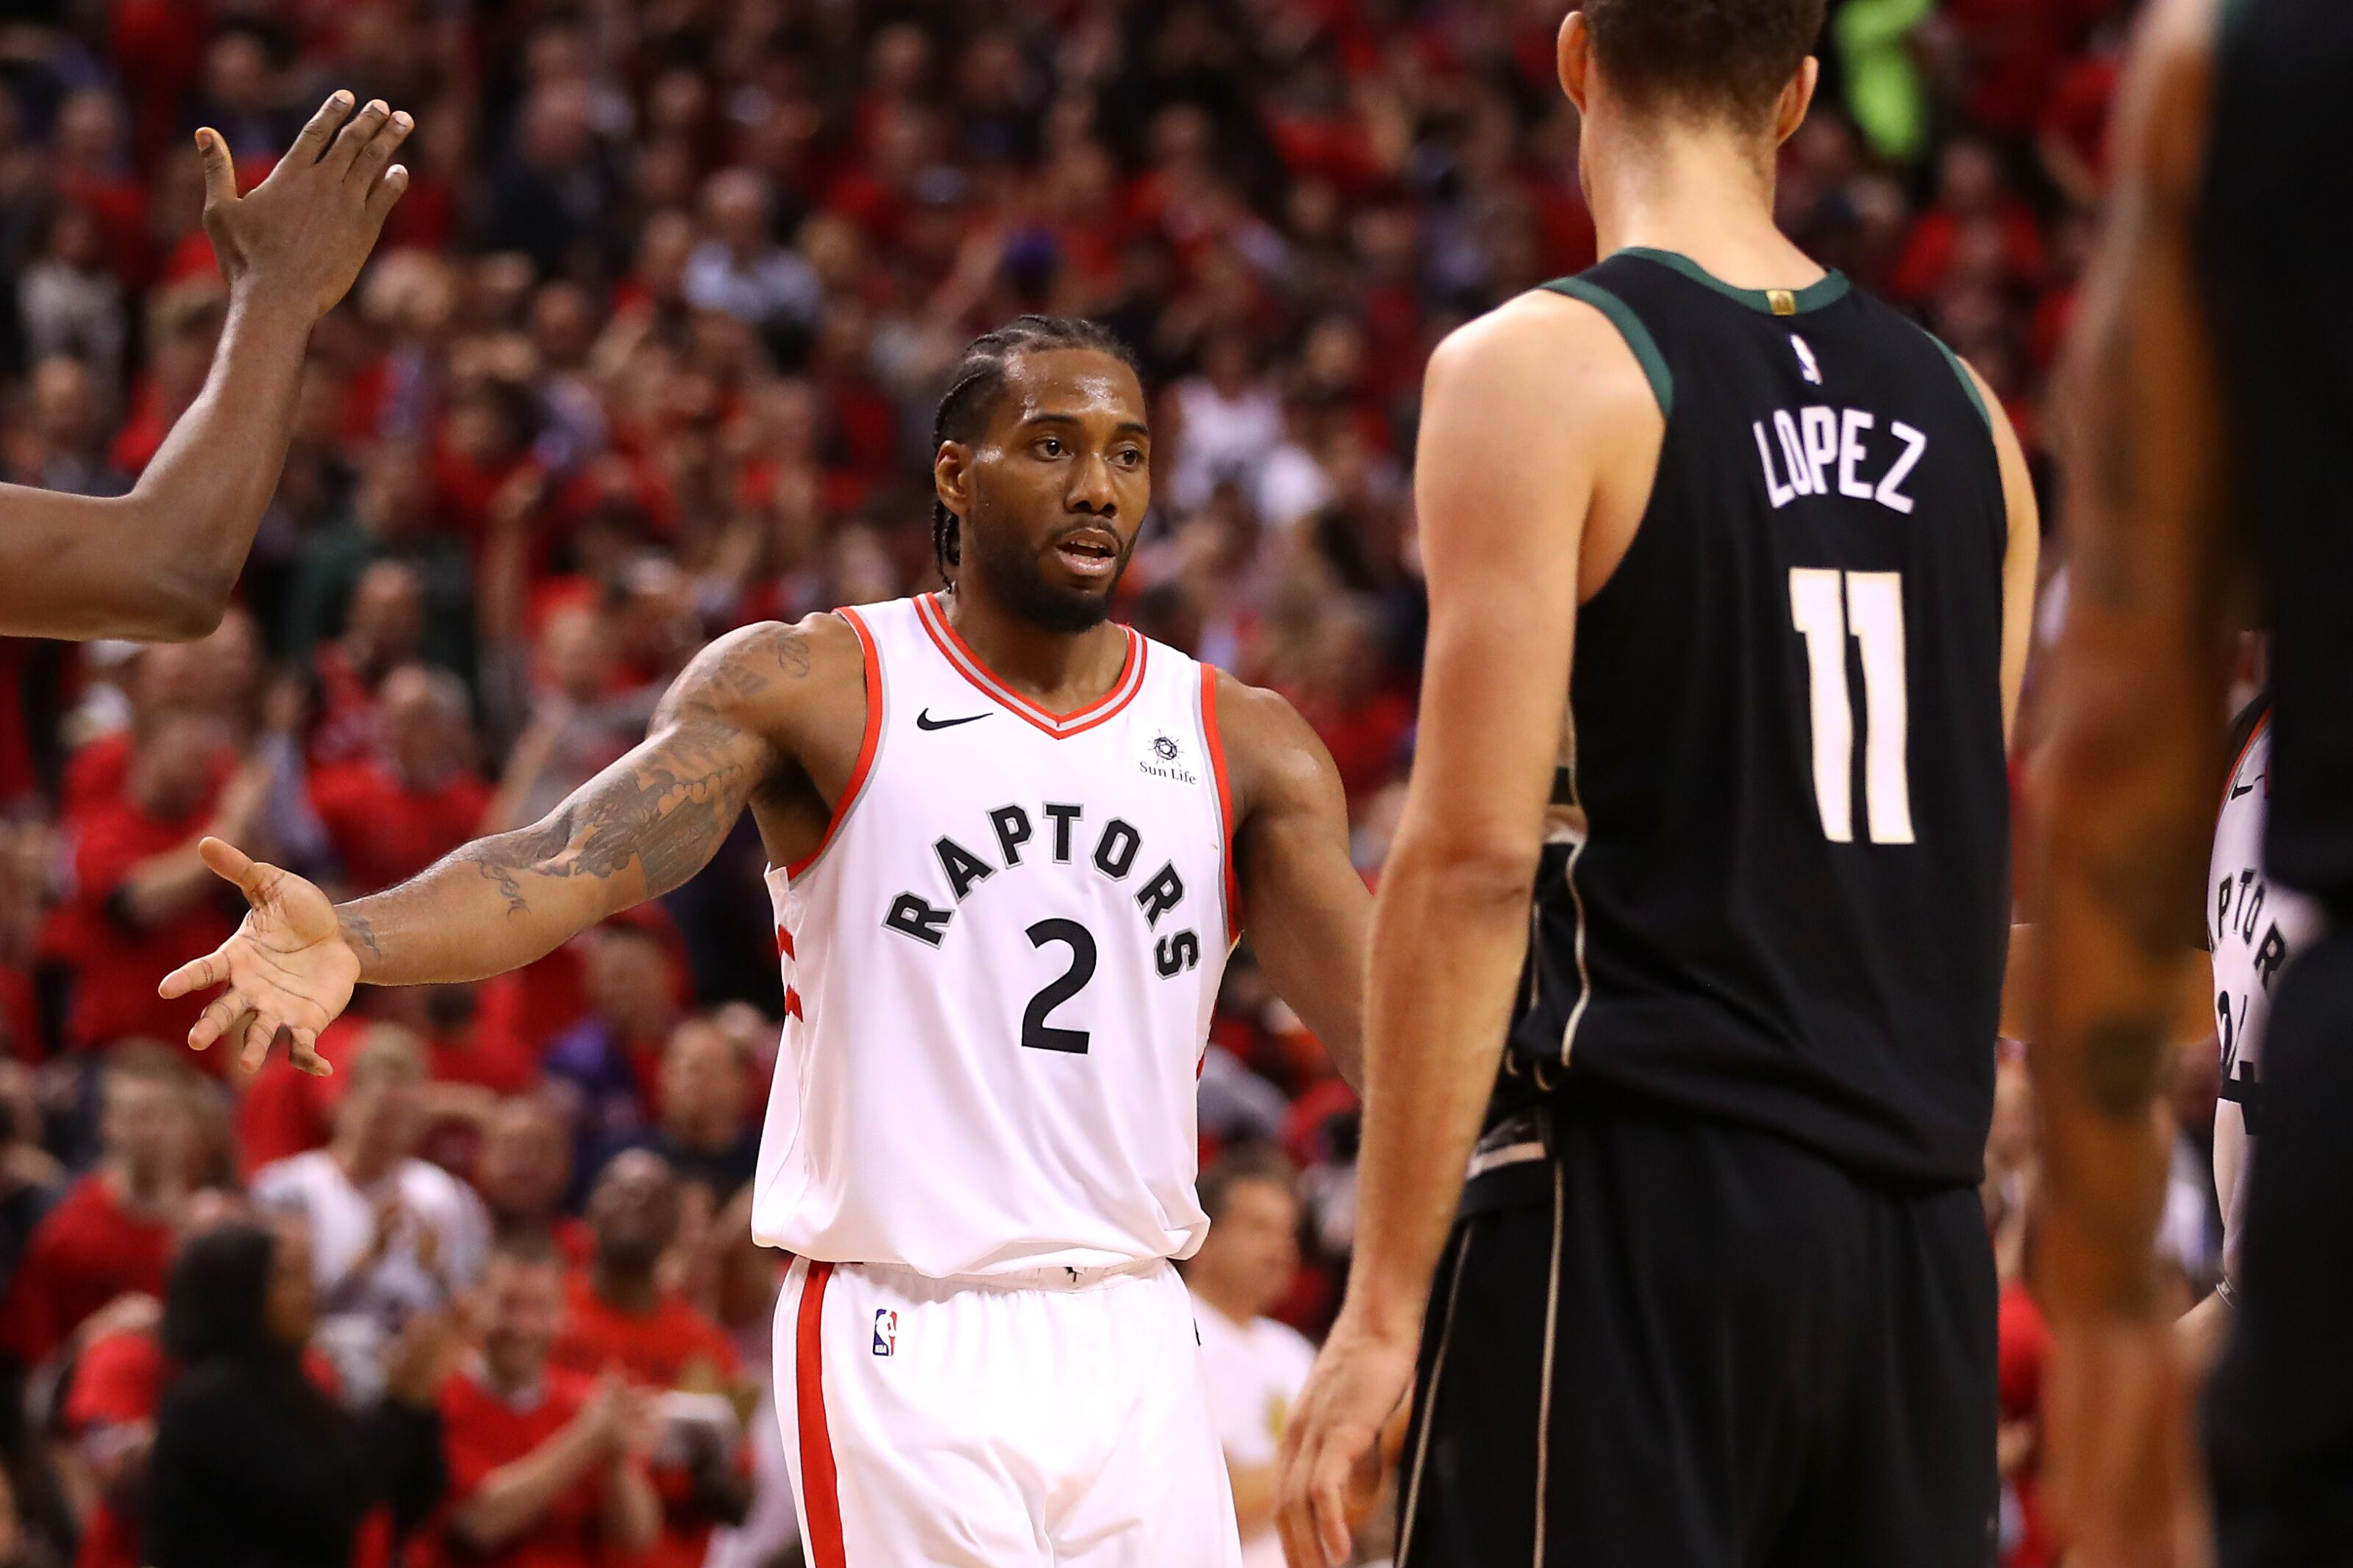 NBA Twitter explodes over Raptors making first-ever Finals appearance